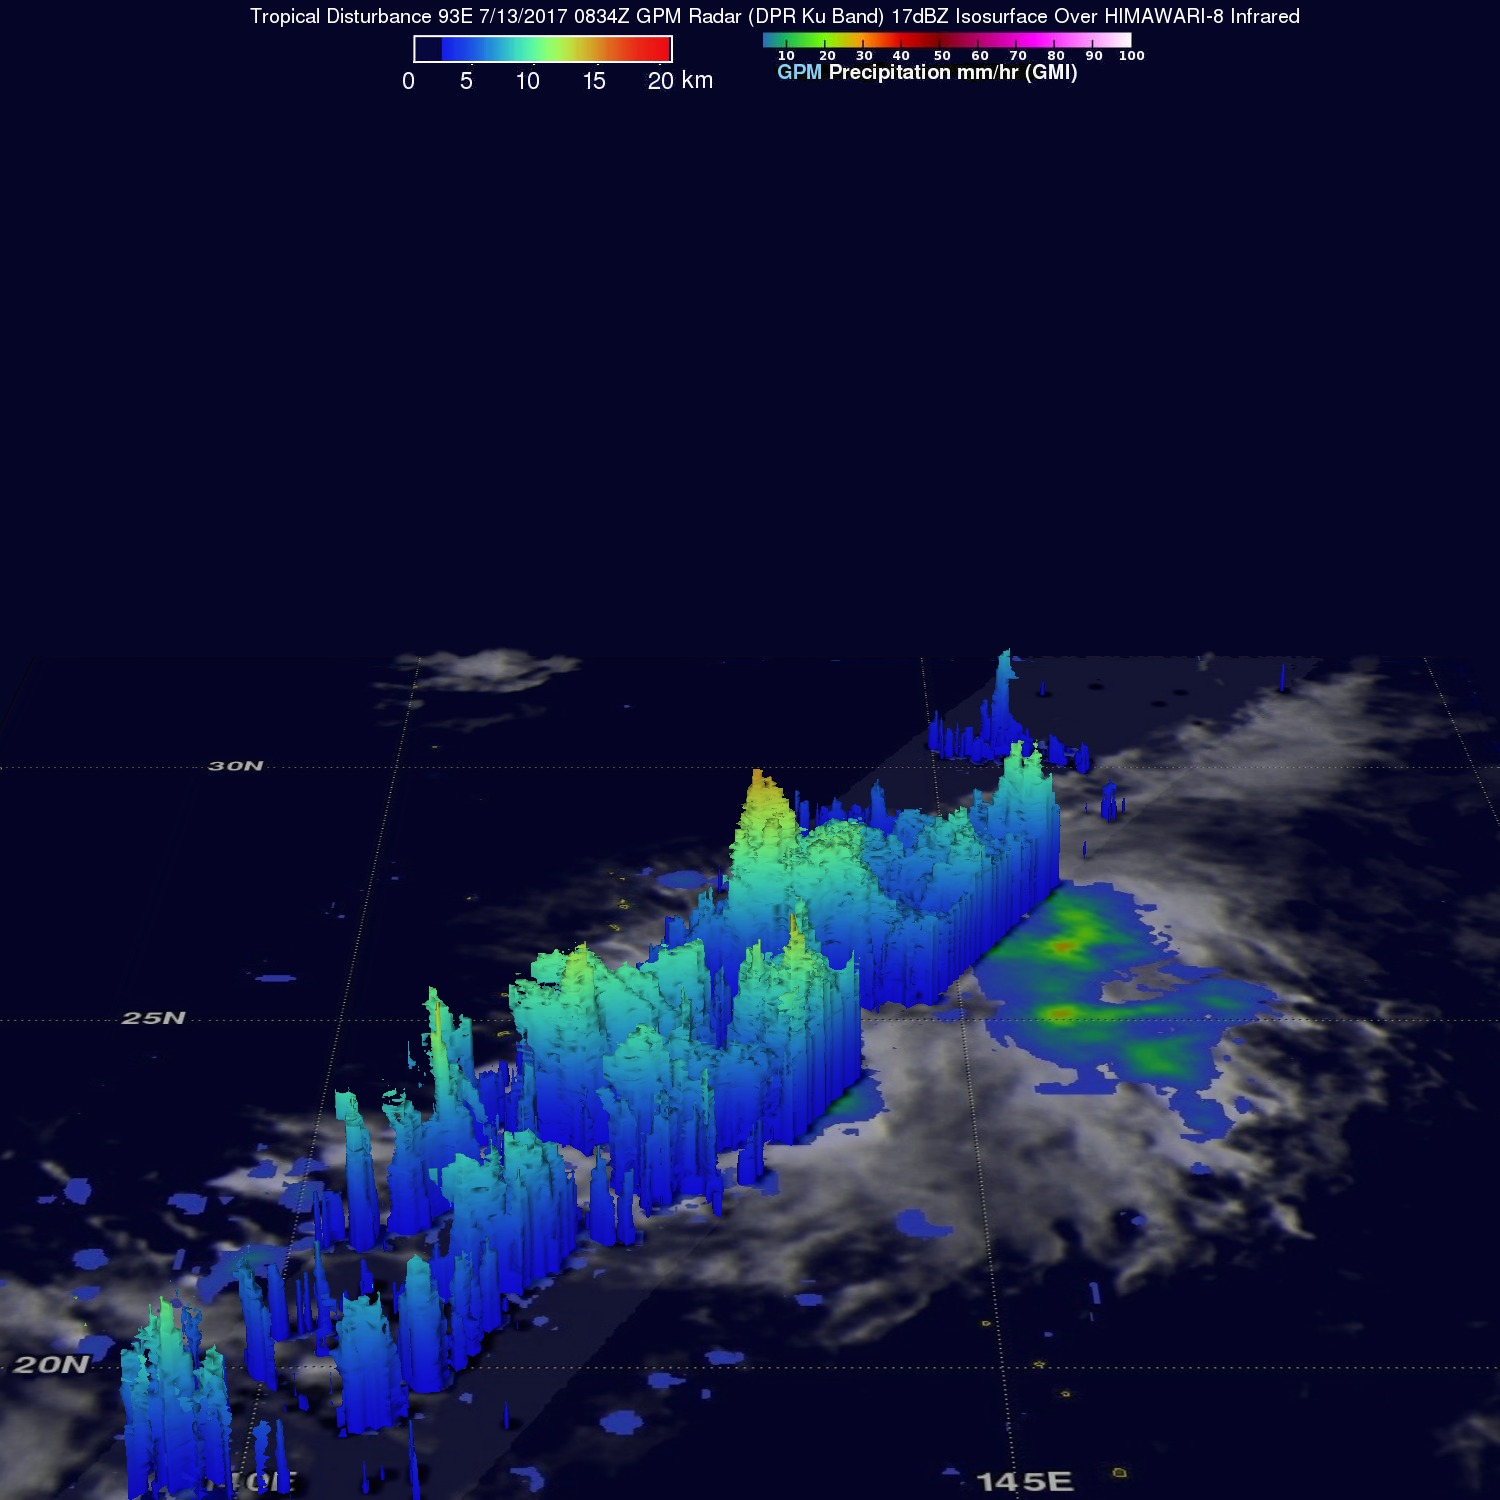 Rainfall In Potential Tropical Cyclone Analyzed